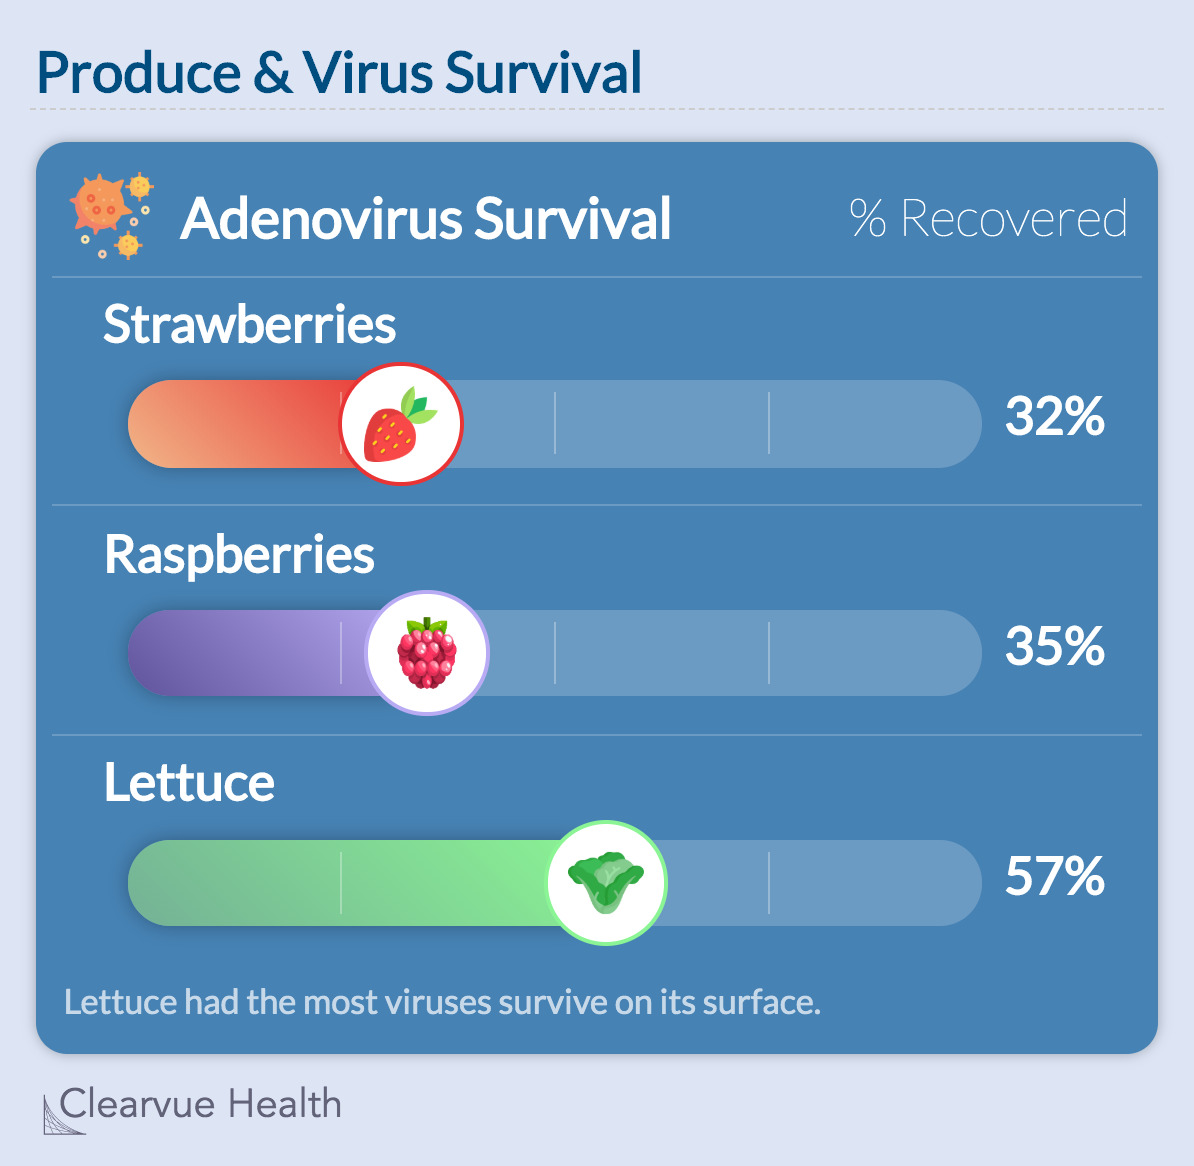 Produce & Virus Survival